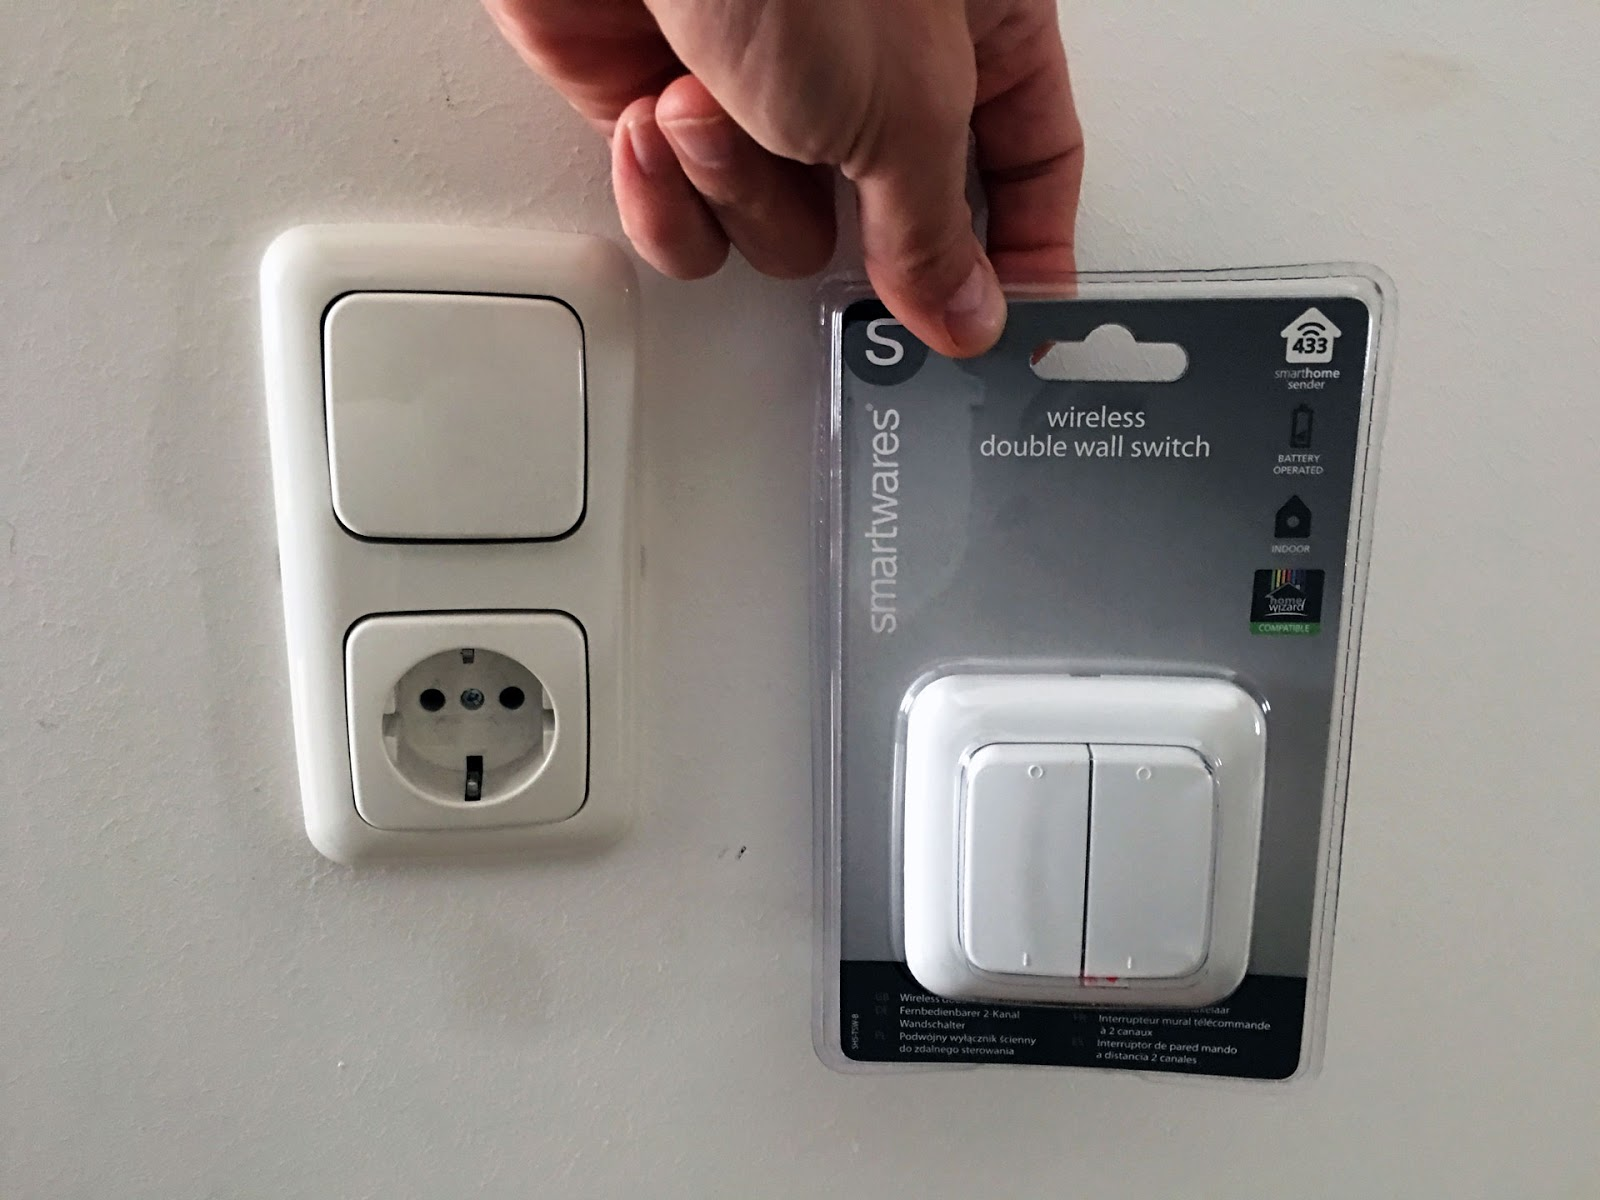 Joes Smarthome: Smartwares, Double Wall Switch, Wireless build-in ...